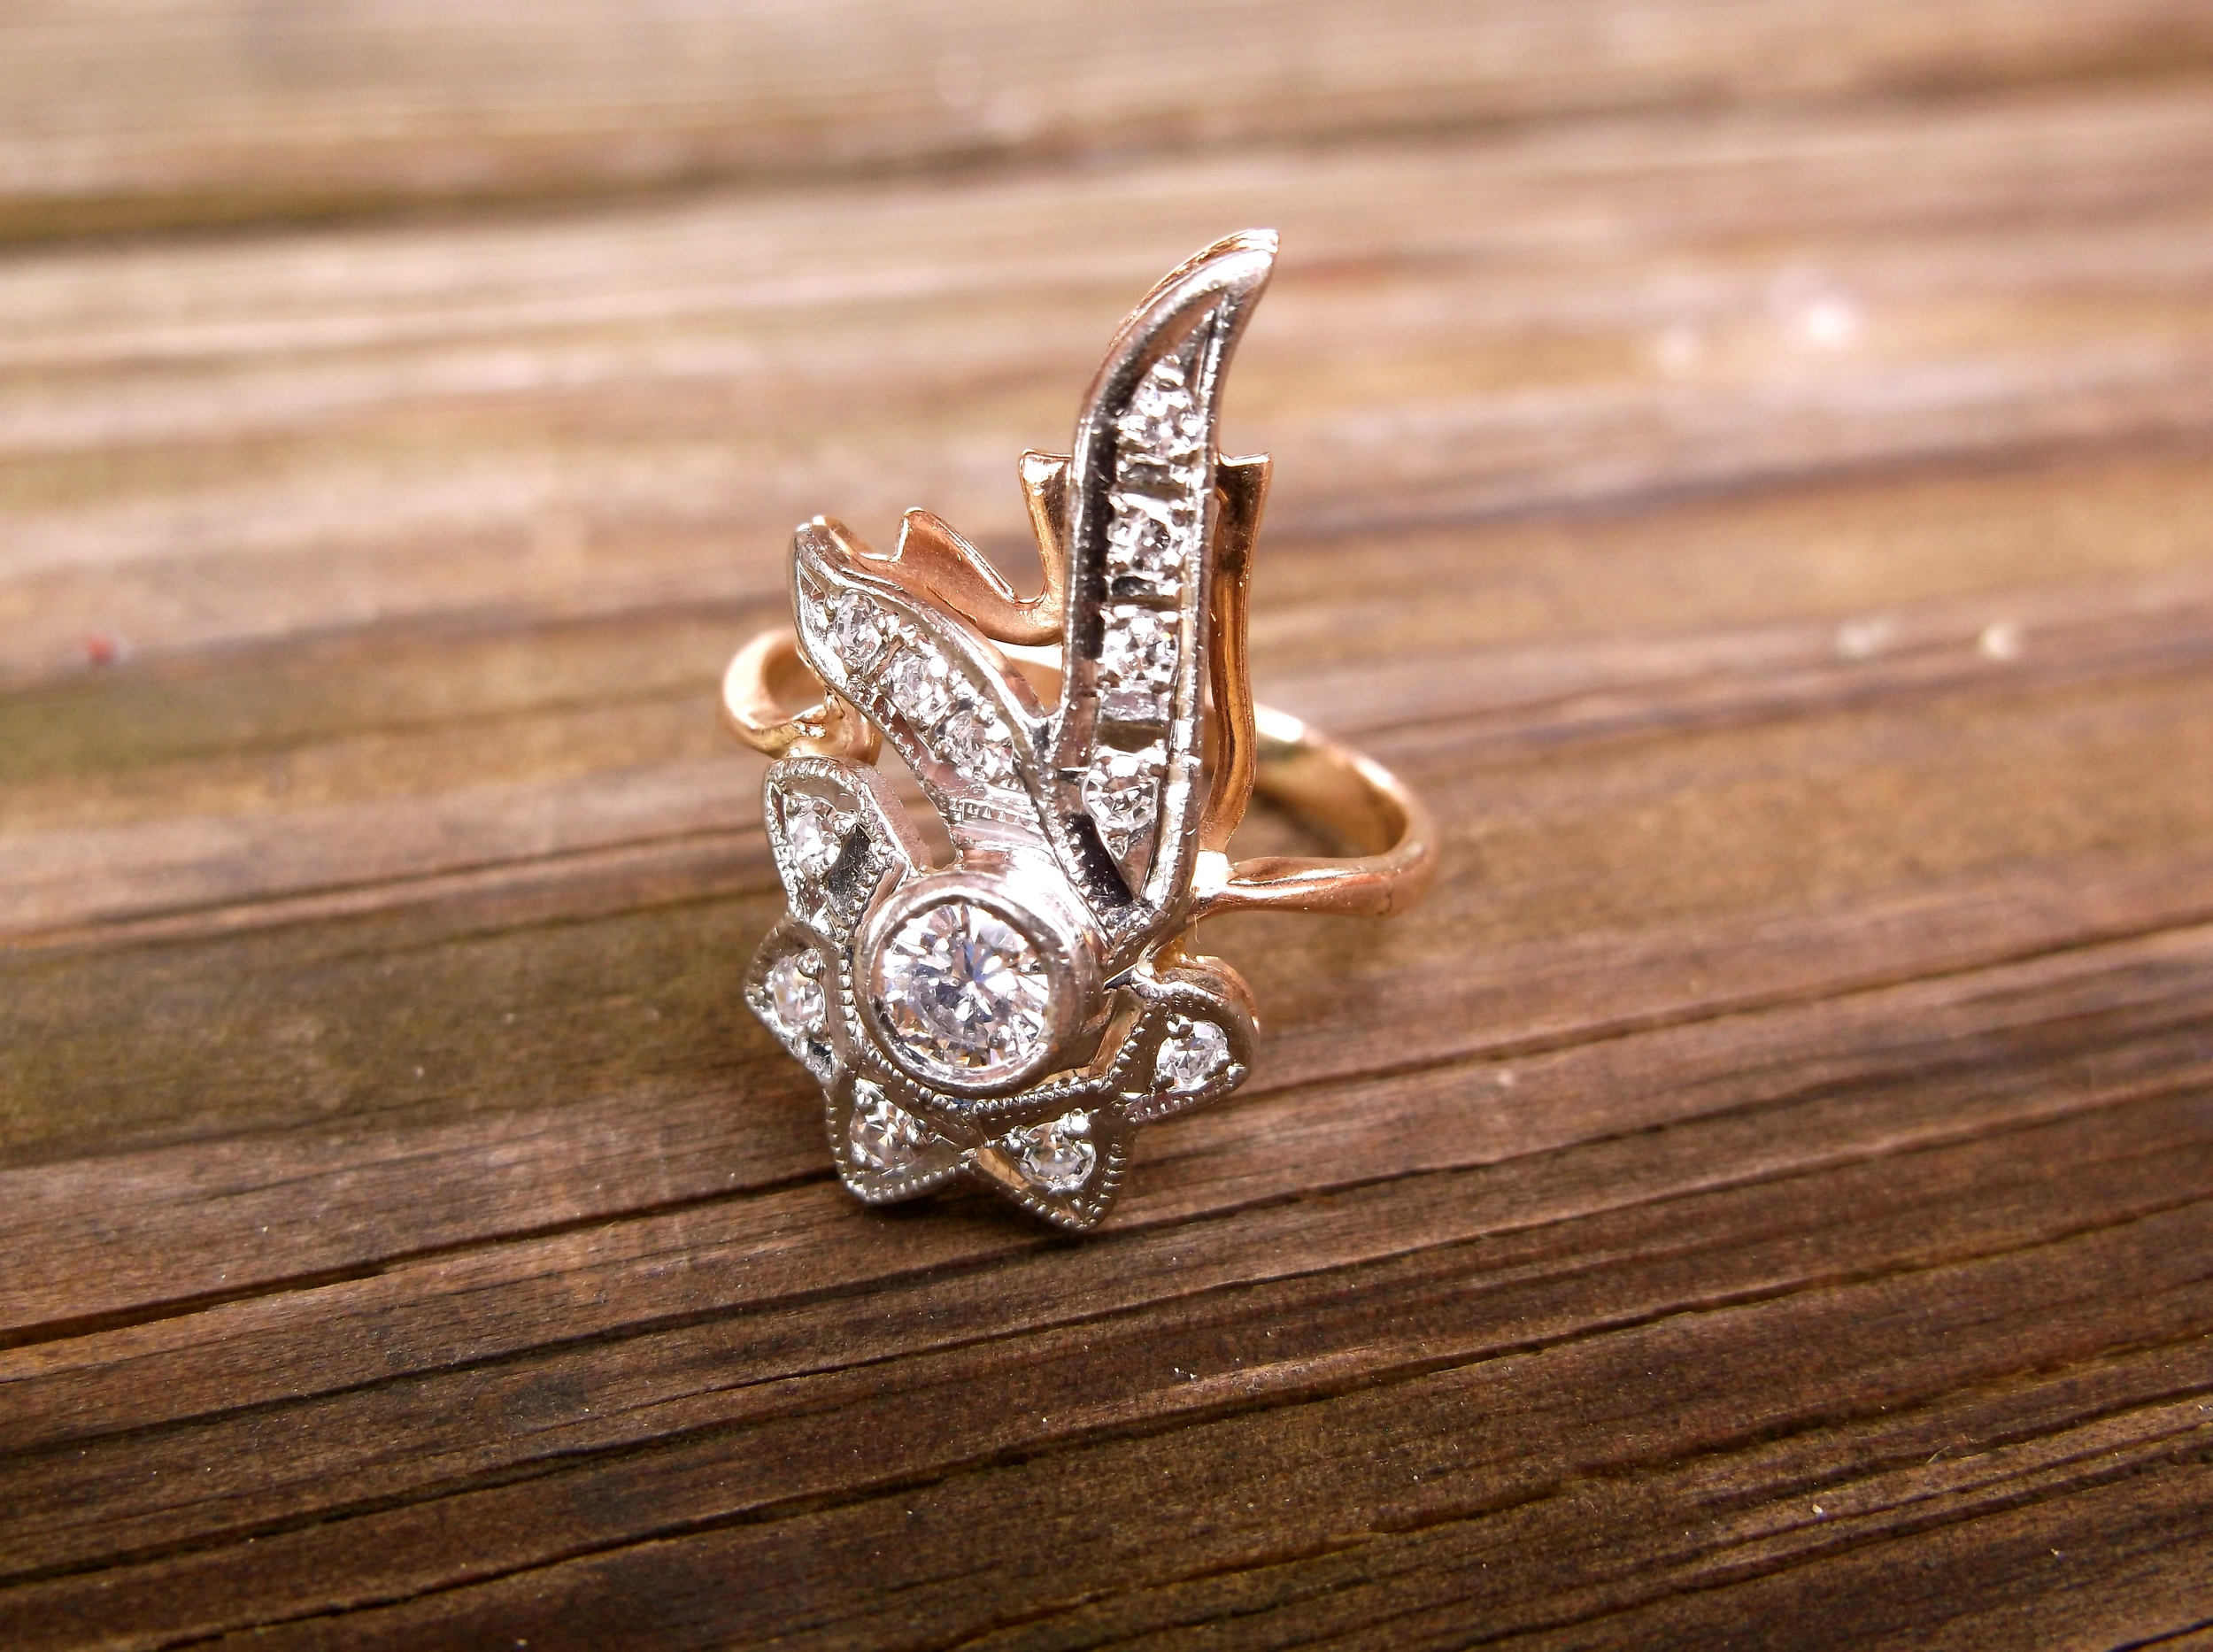 SOLD - 1940's retro rose gold and white gold elongated diamond ring with a 0.15 carat diamond in the center.